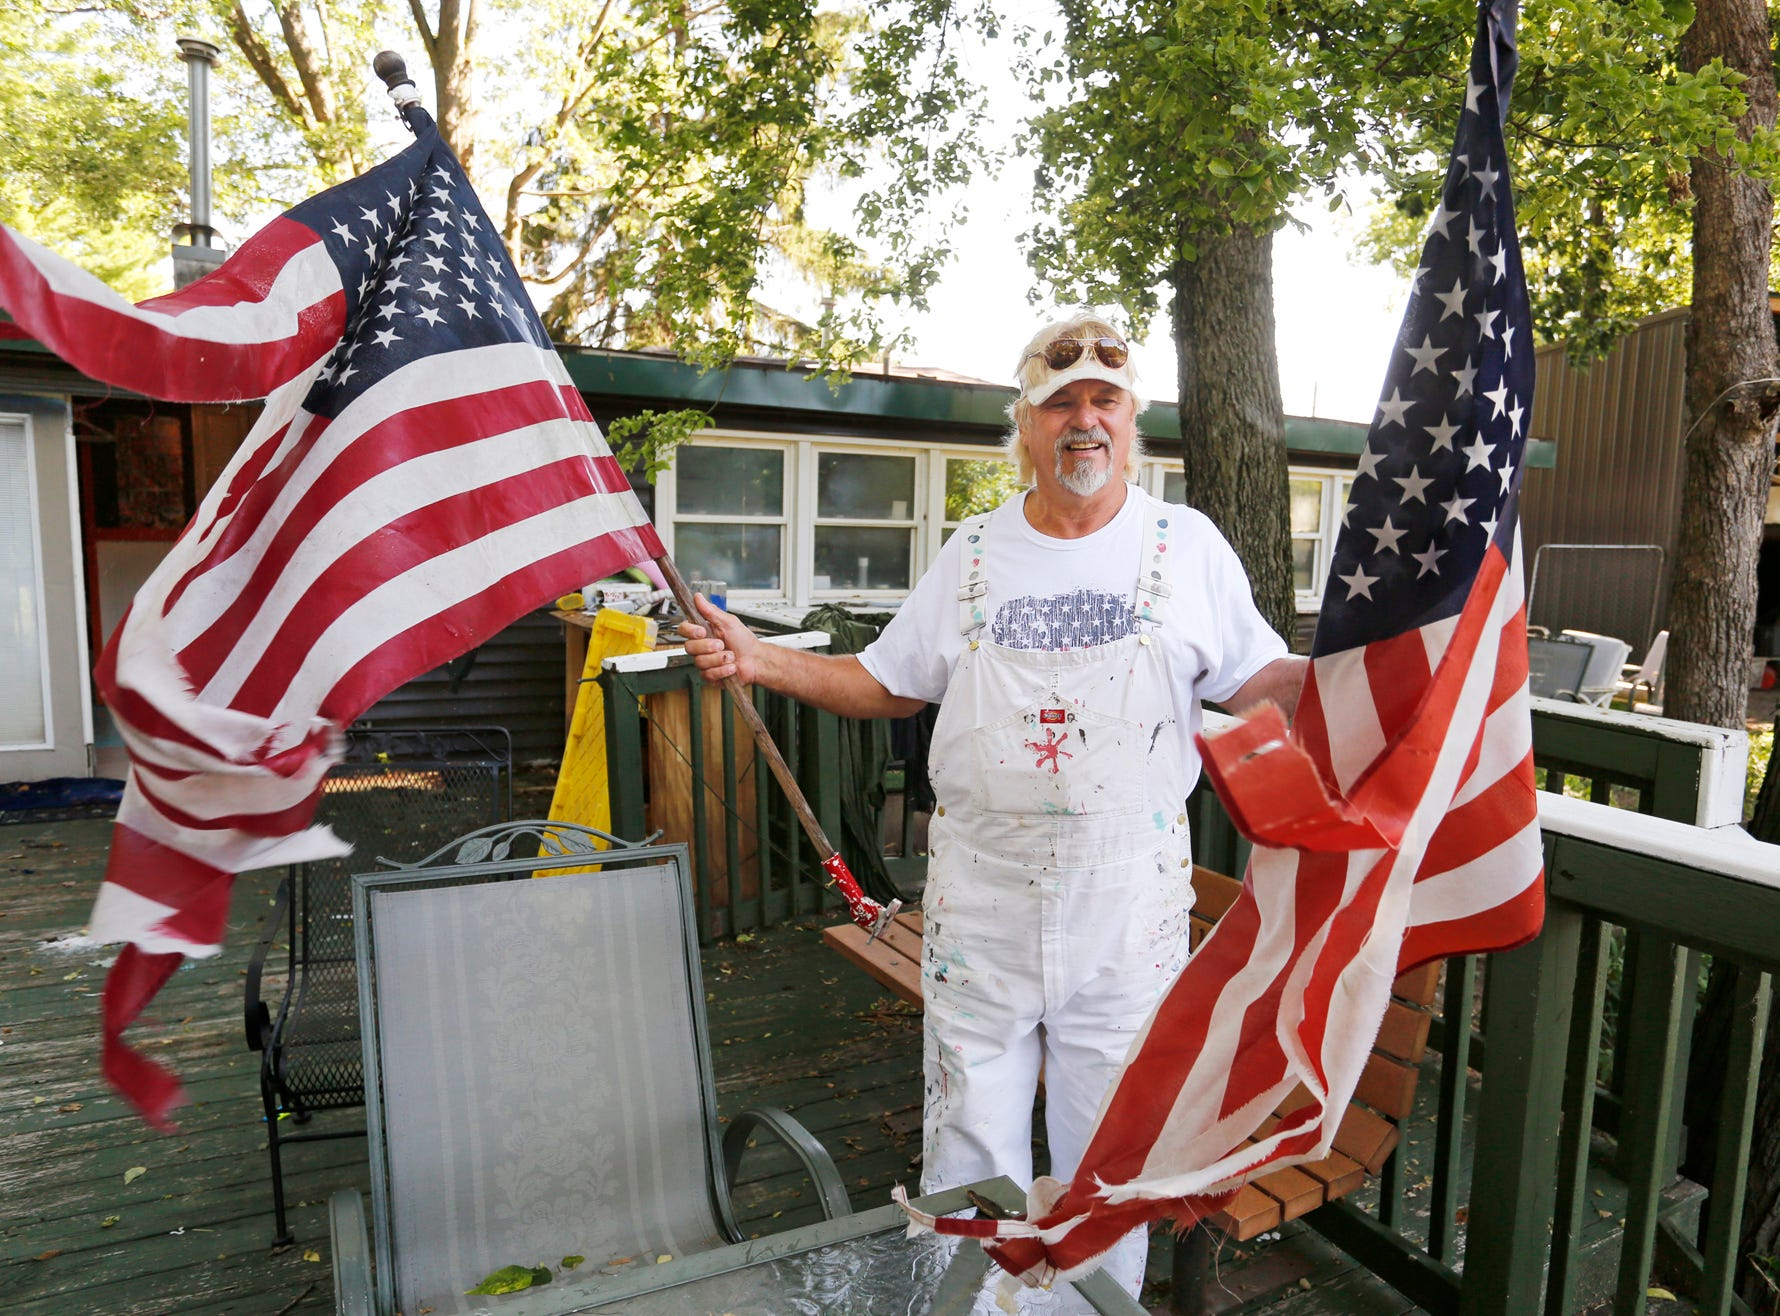 "Jeff Seramur gathers two US flags that are worn and faded from his back deck Friday, July 6, 2018, at his home on Horseshoe Bend. Seramur's home on the Tippecanoe River was flooded last February. It was the fourth time his home has been flooded. ""They (flags) made it through the flood, now it's time to retire them,"" said Seramur."